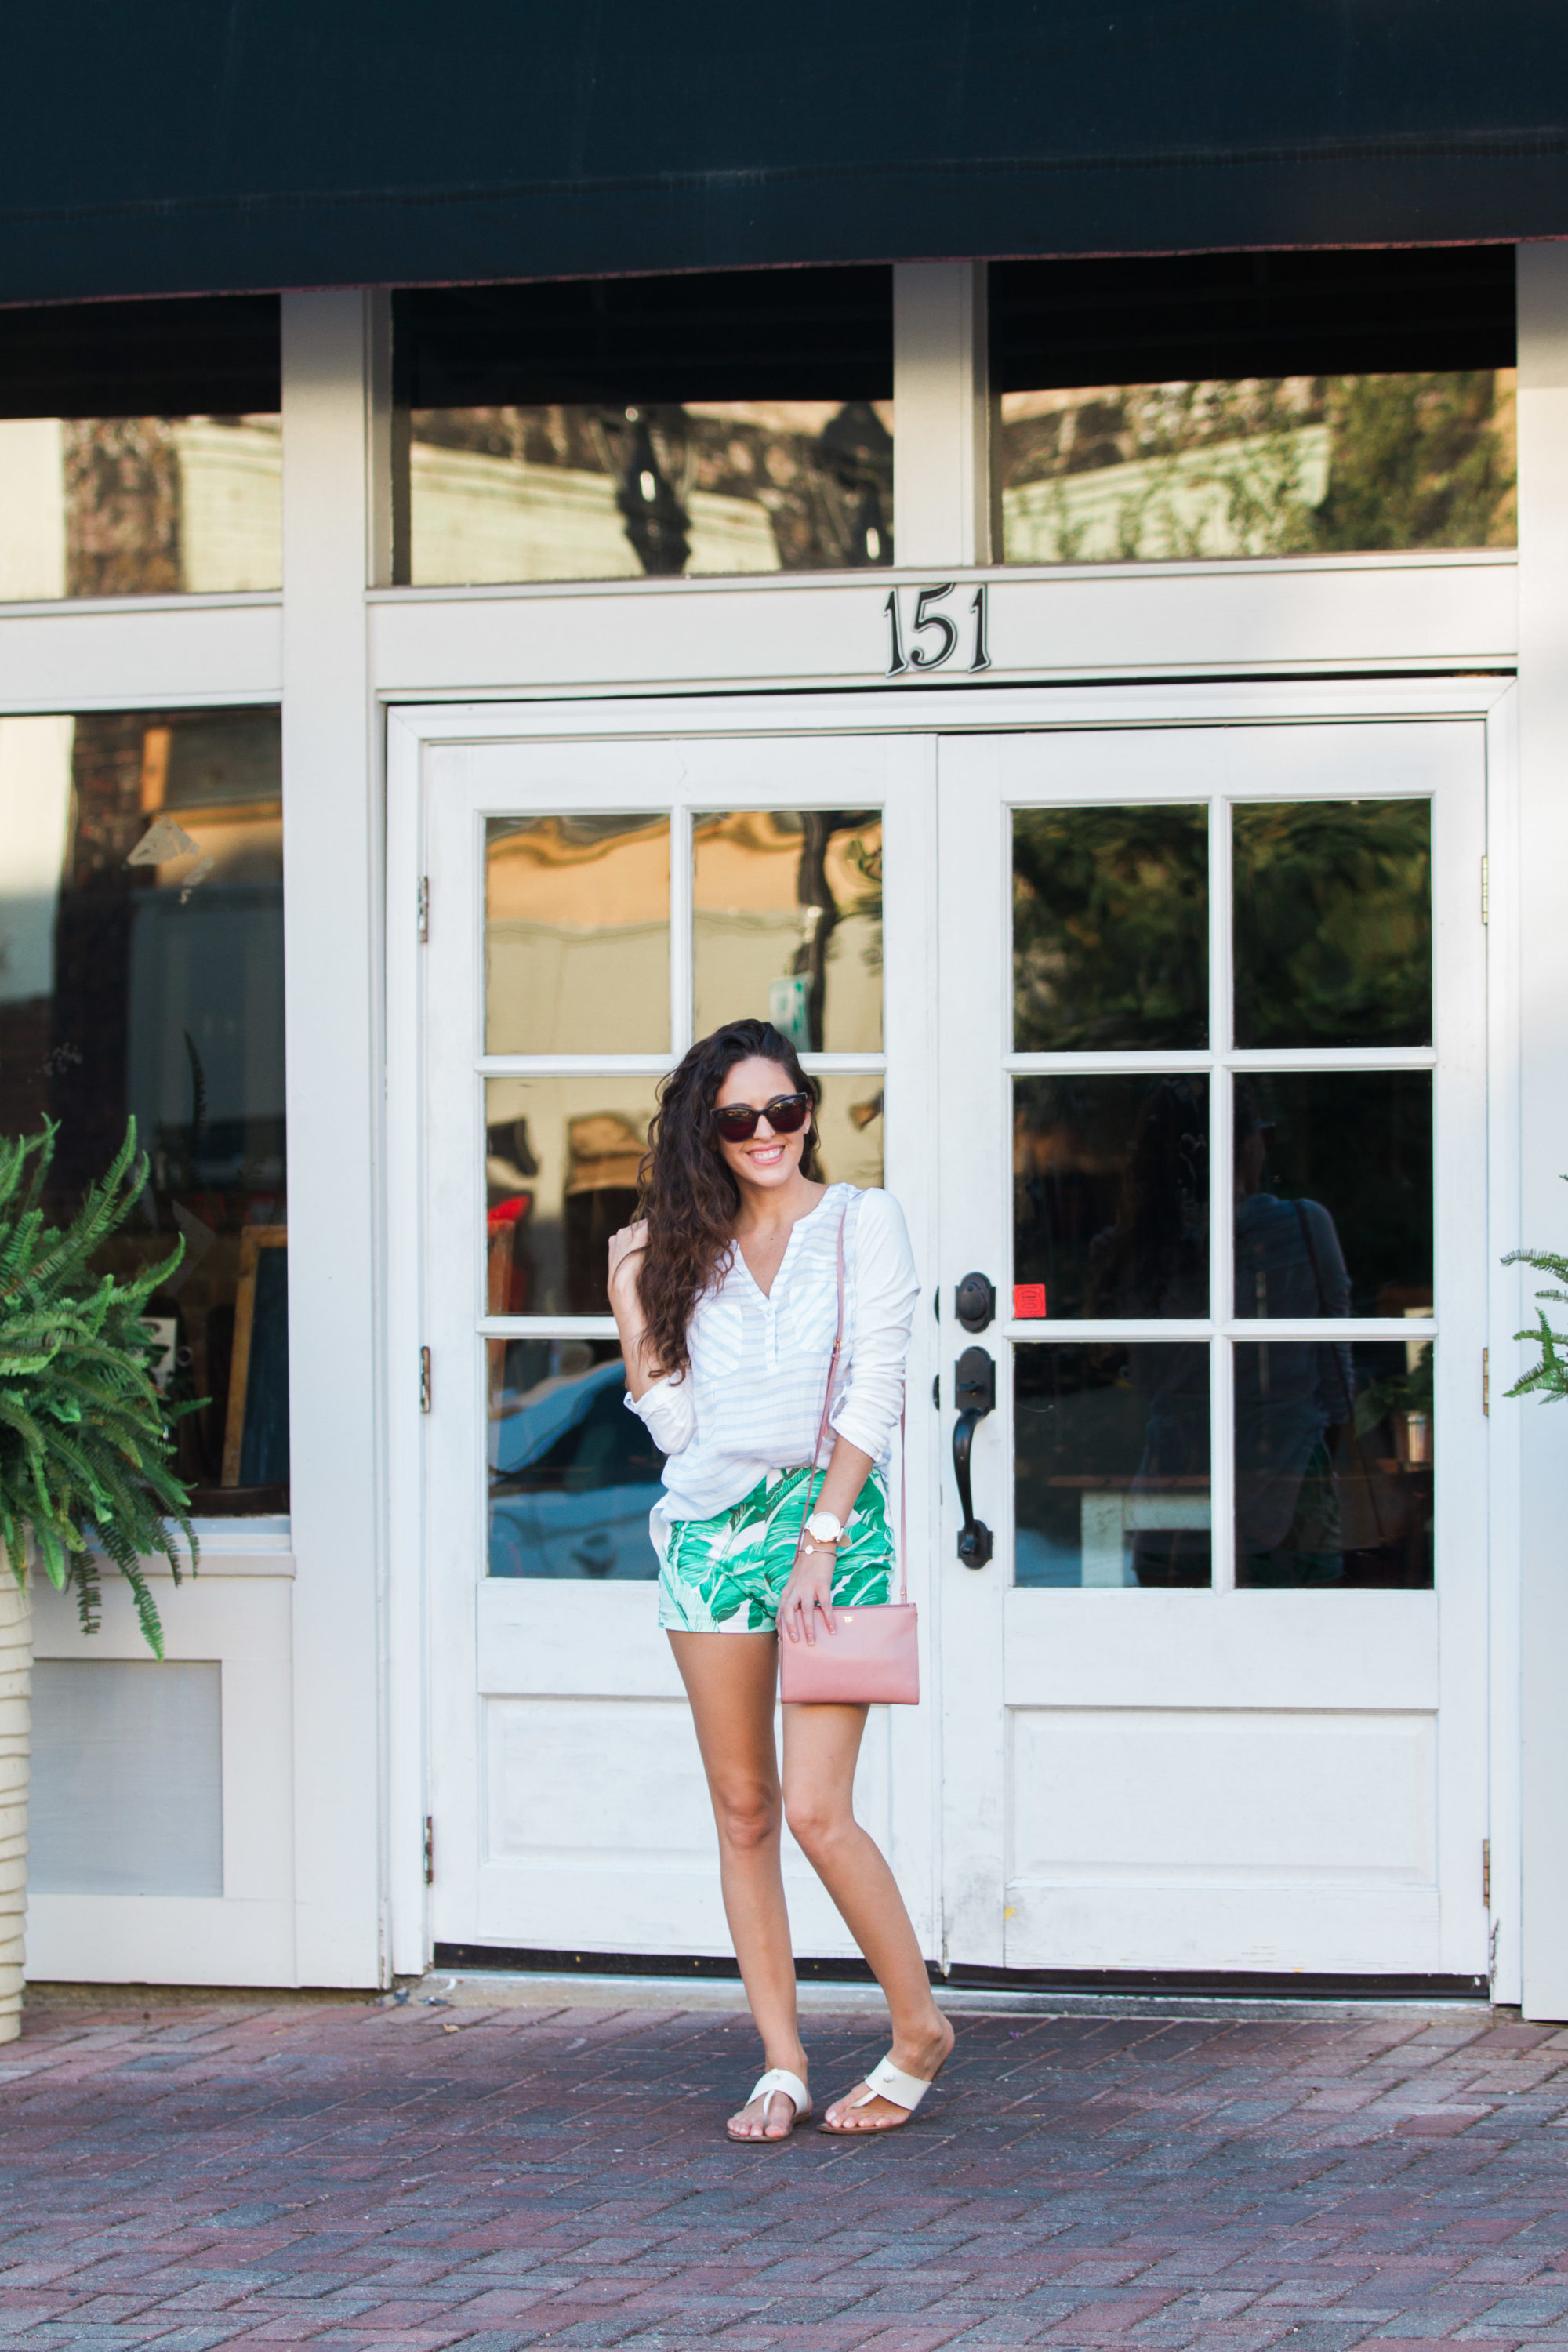 palm shorts, late summer outfit, colorful summer style, pastel outfit ideas, tom ford bag, southern style, casual style